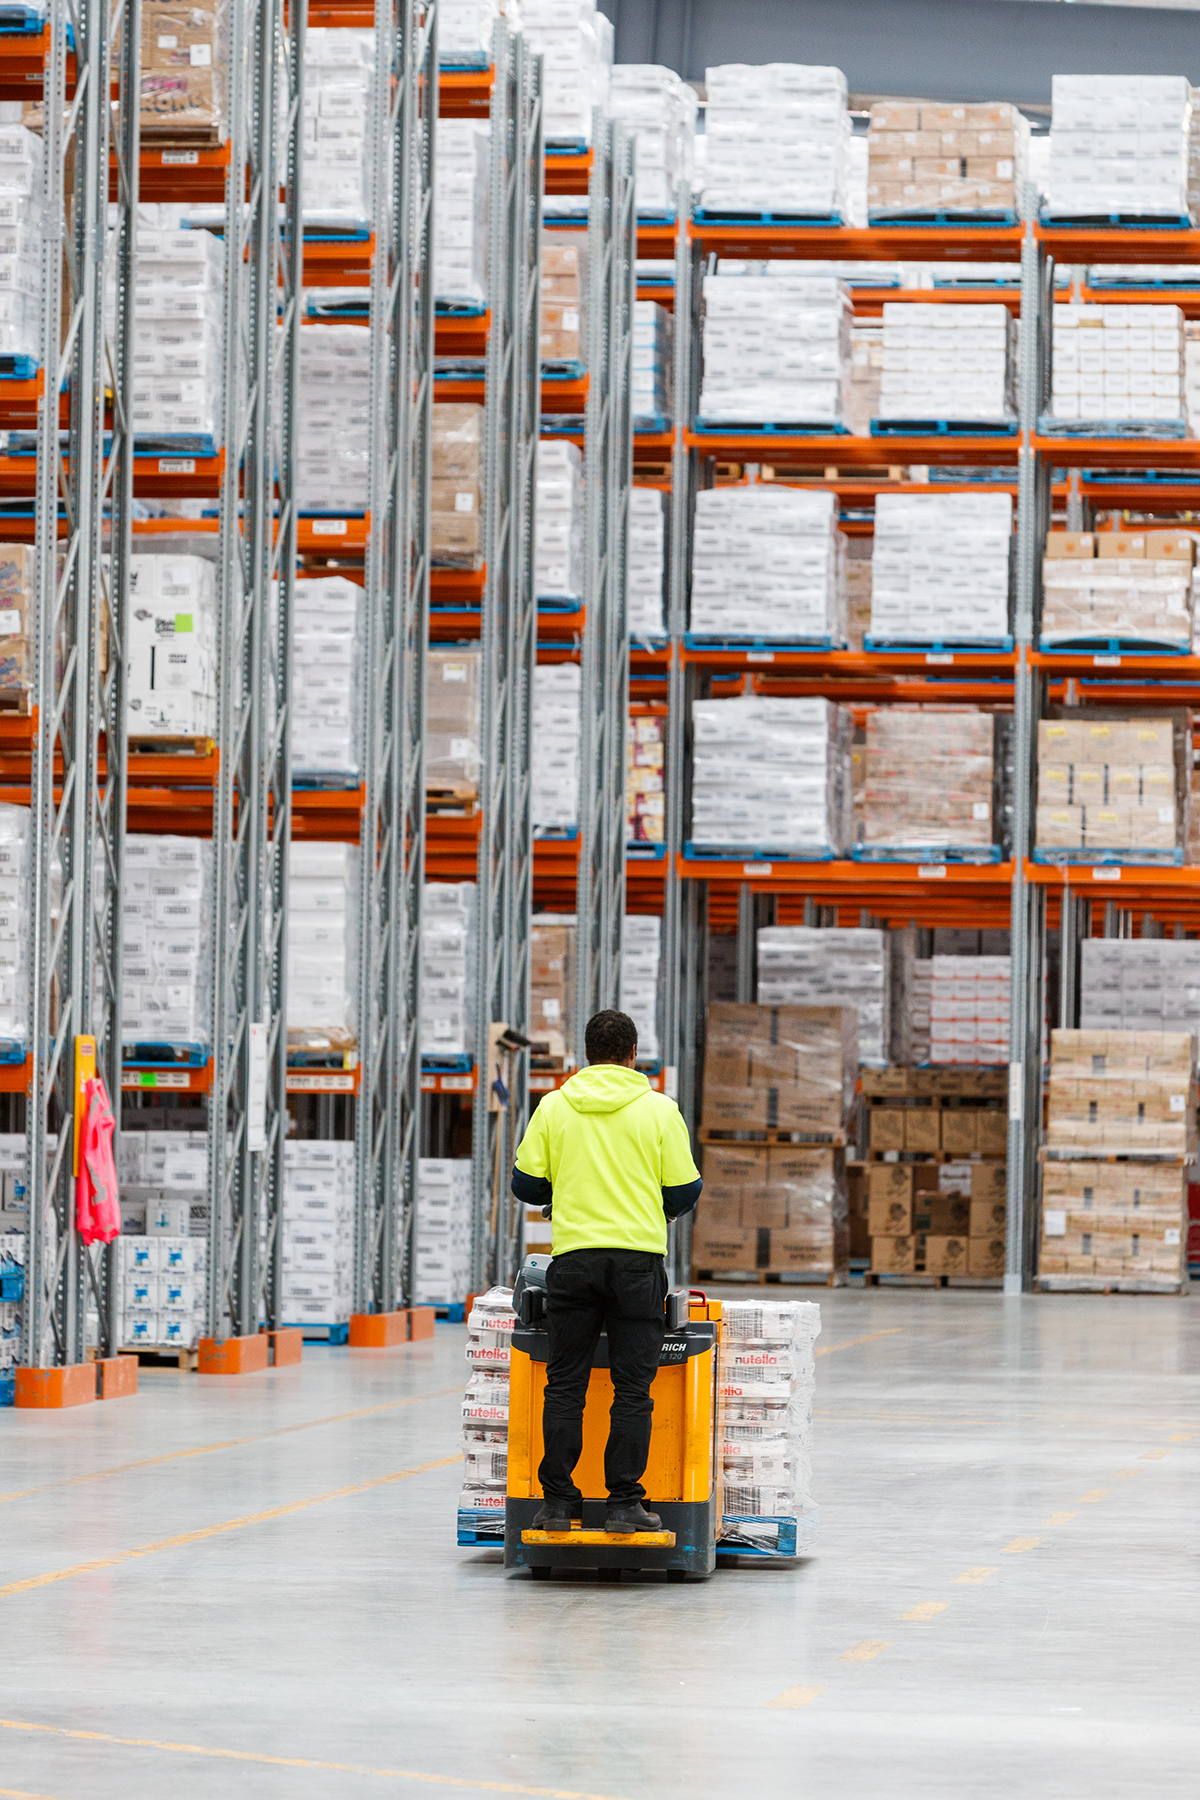 Distribution and logistics are all part of the export process